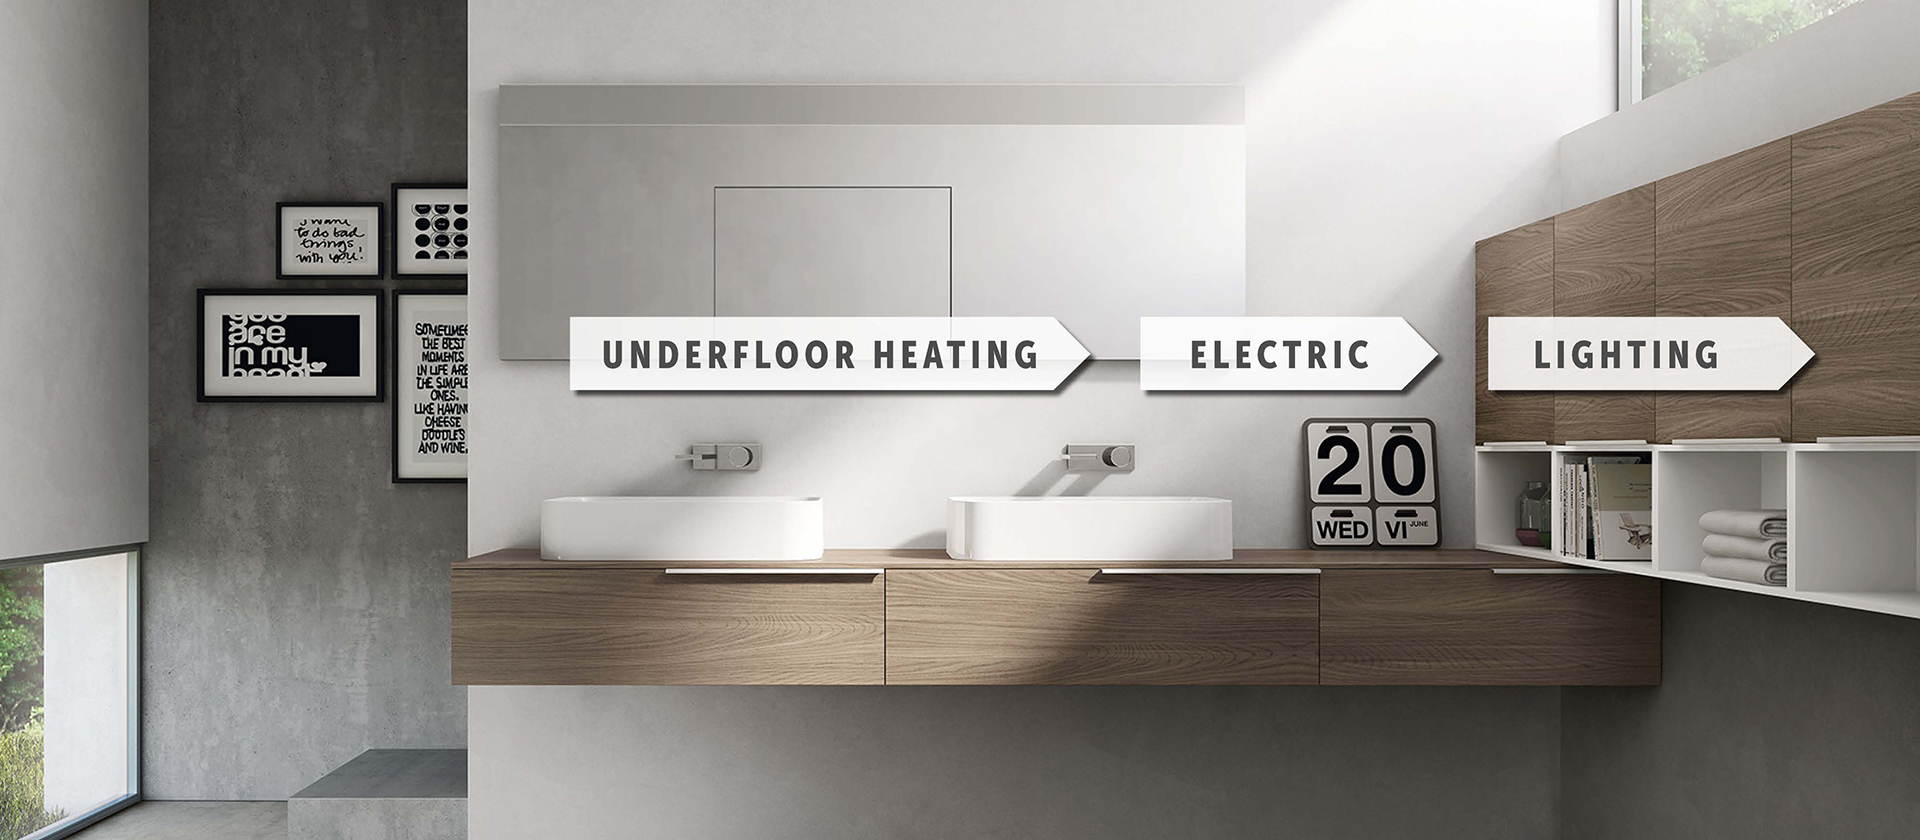 Underfloor Heating, Electric, Lighting